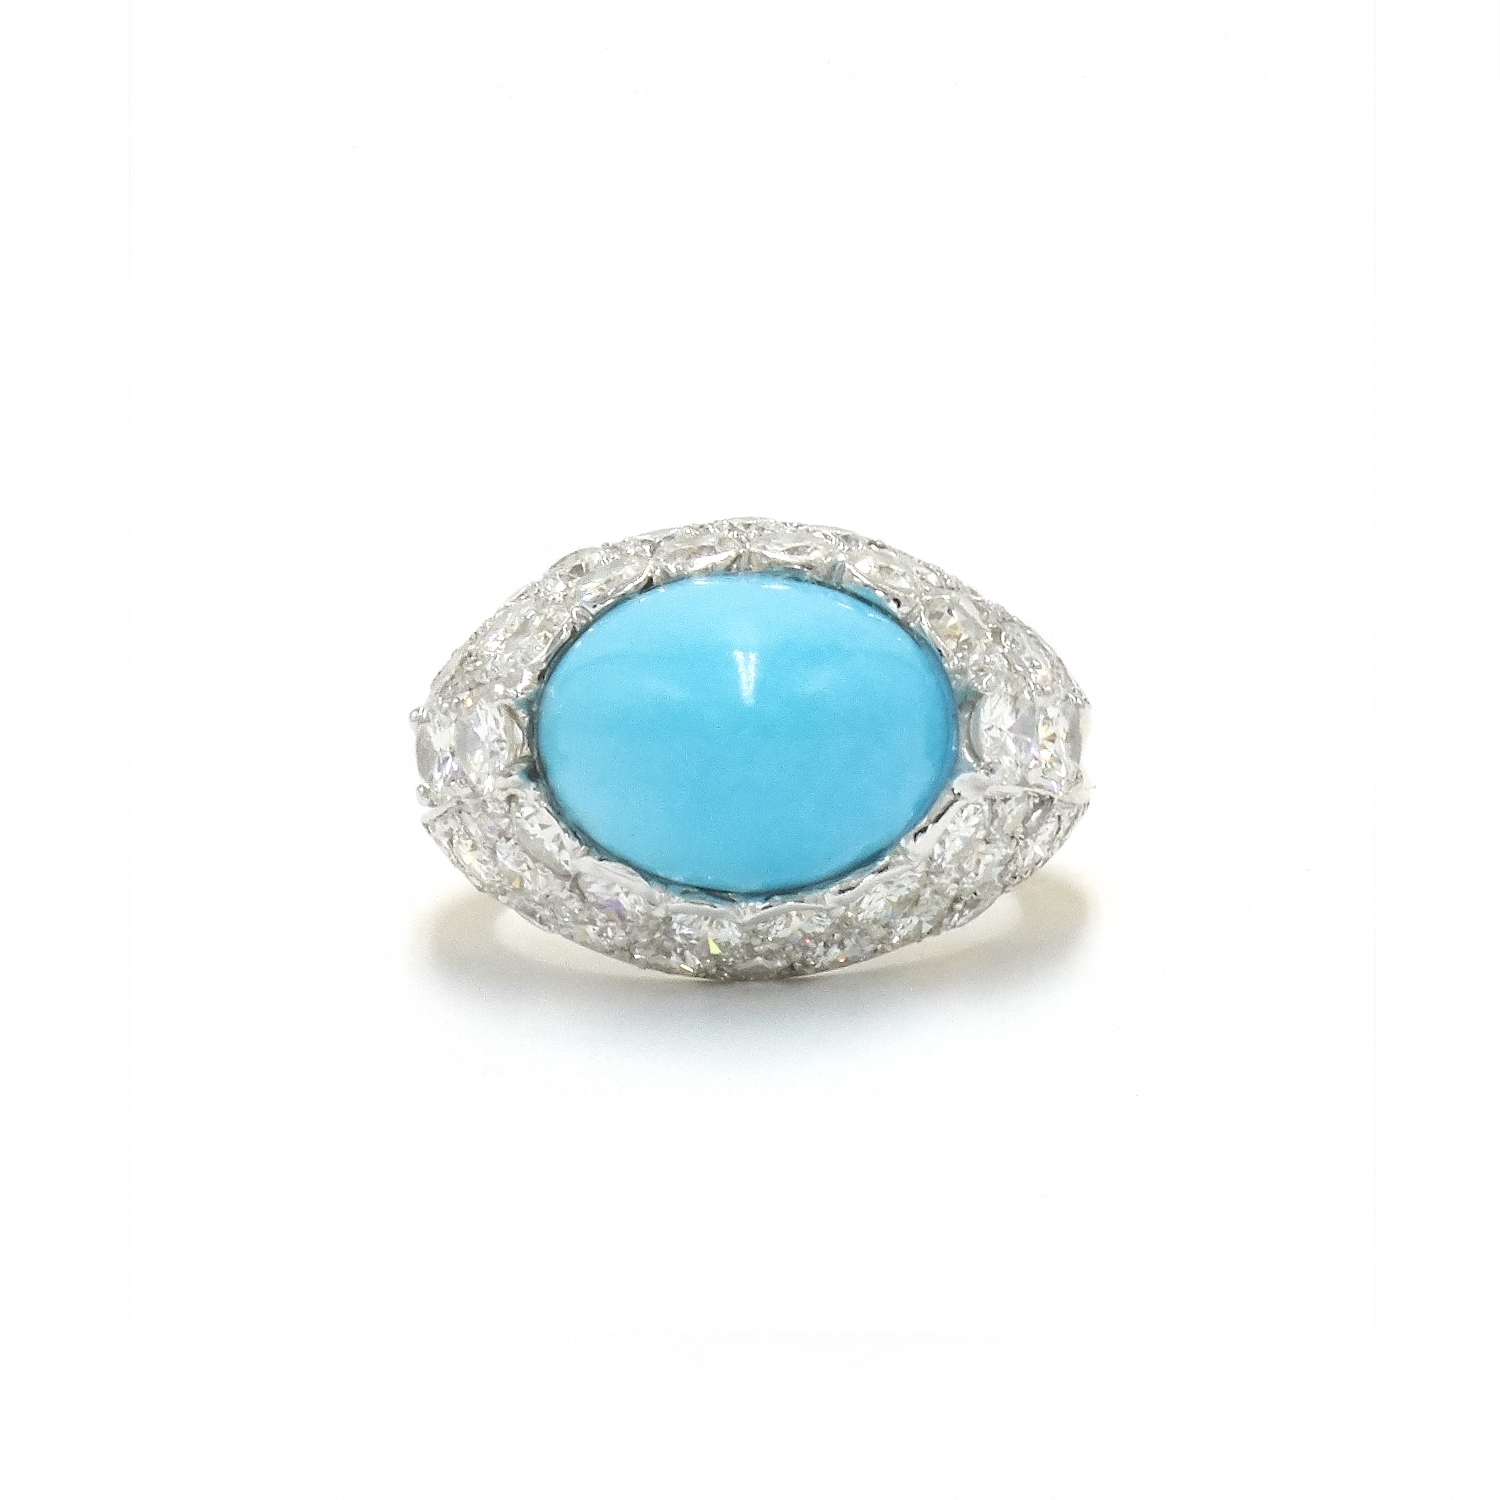 1960s Turquoise and Diamond Ring by Cartier Style R-40241-FL-0-0